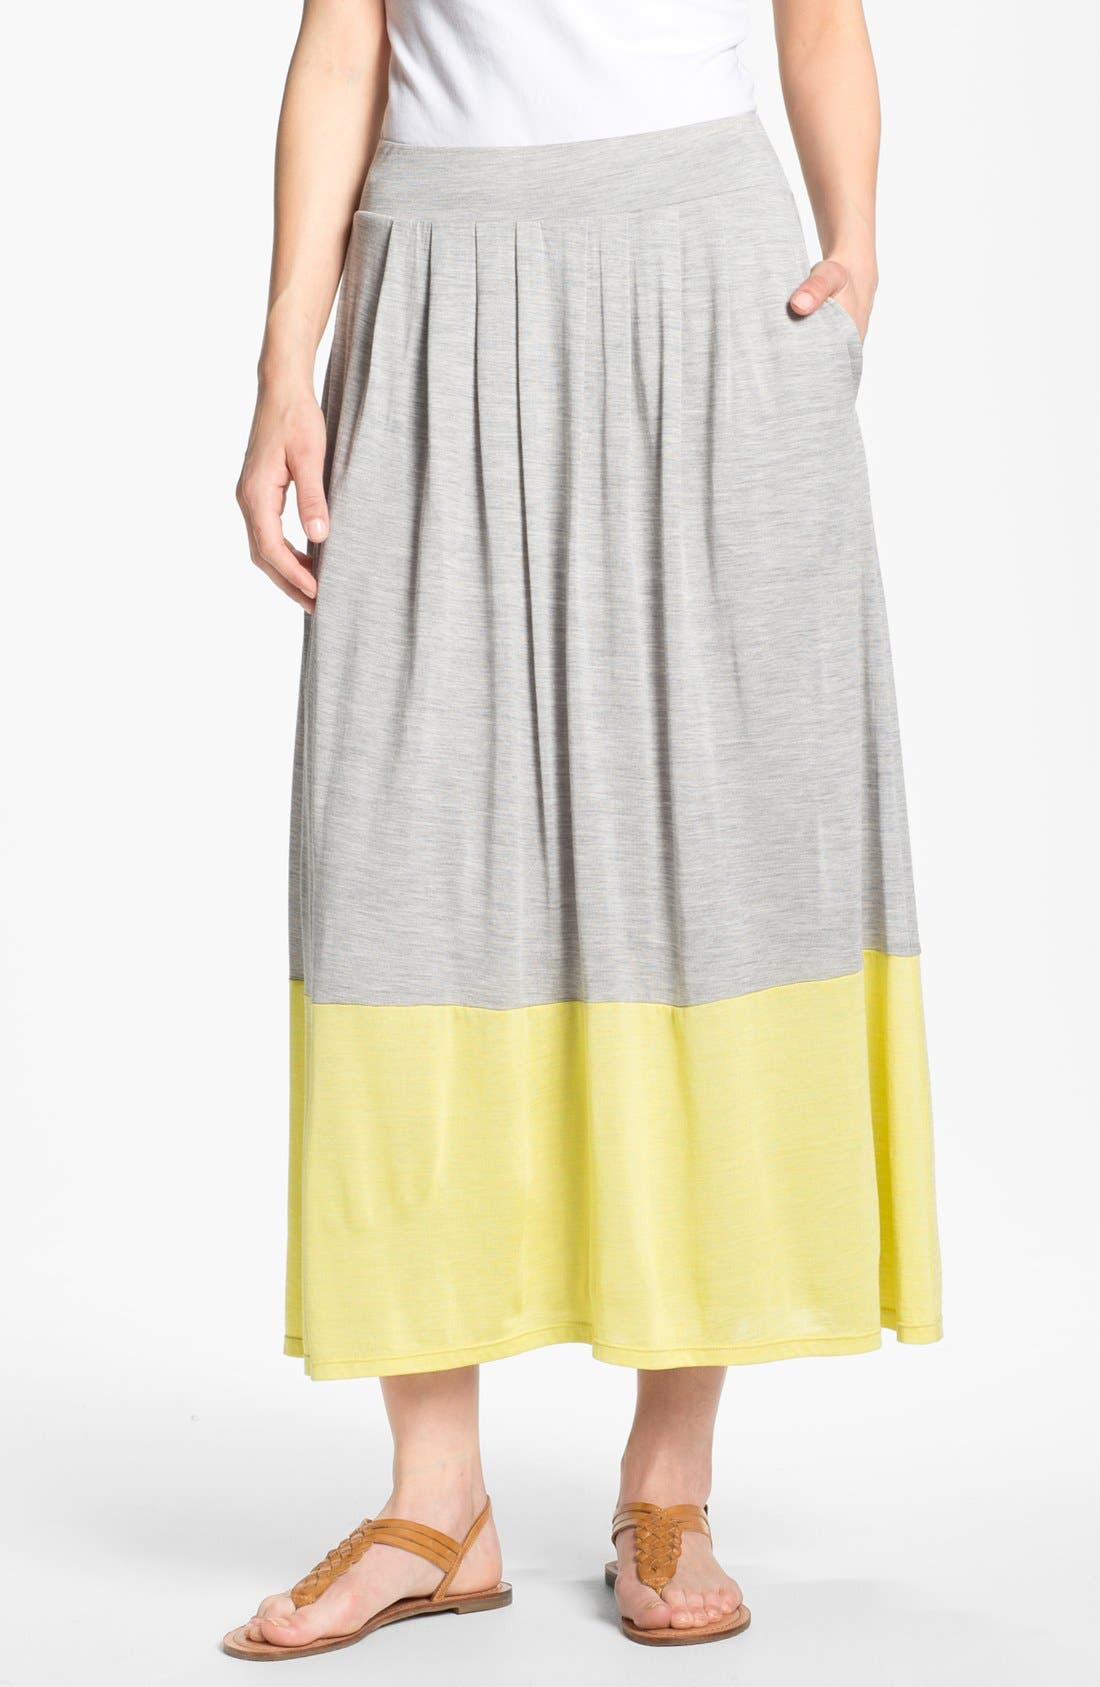 Alternate Image 1 Selected - Eileen Fisher Pleated Colorblock Midi Skirt (Regular & Petite)